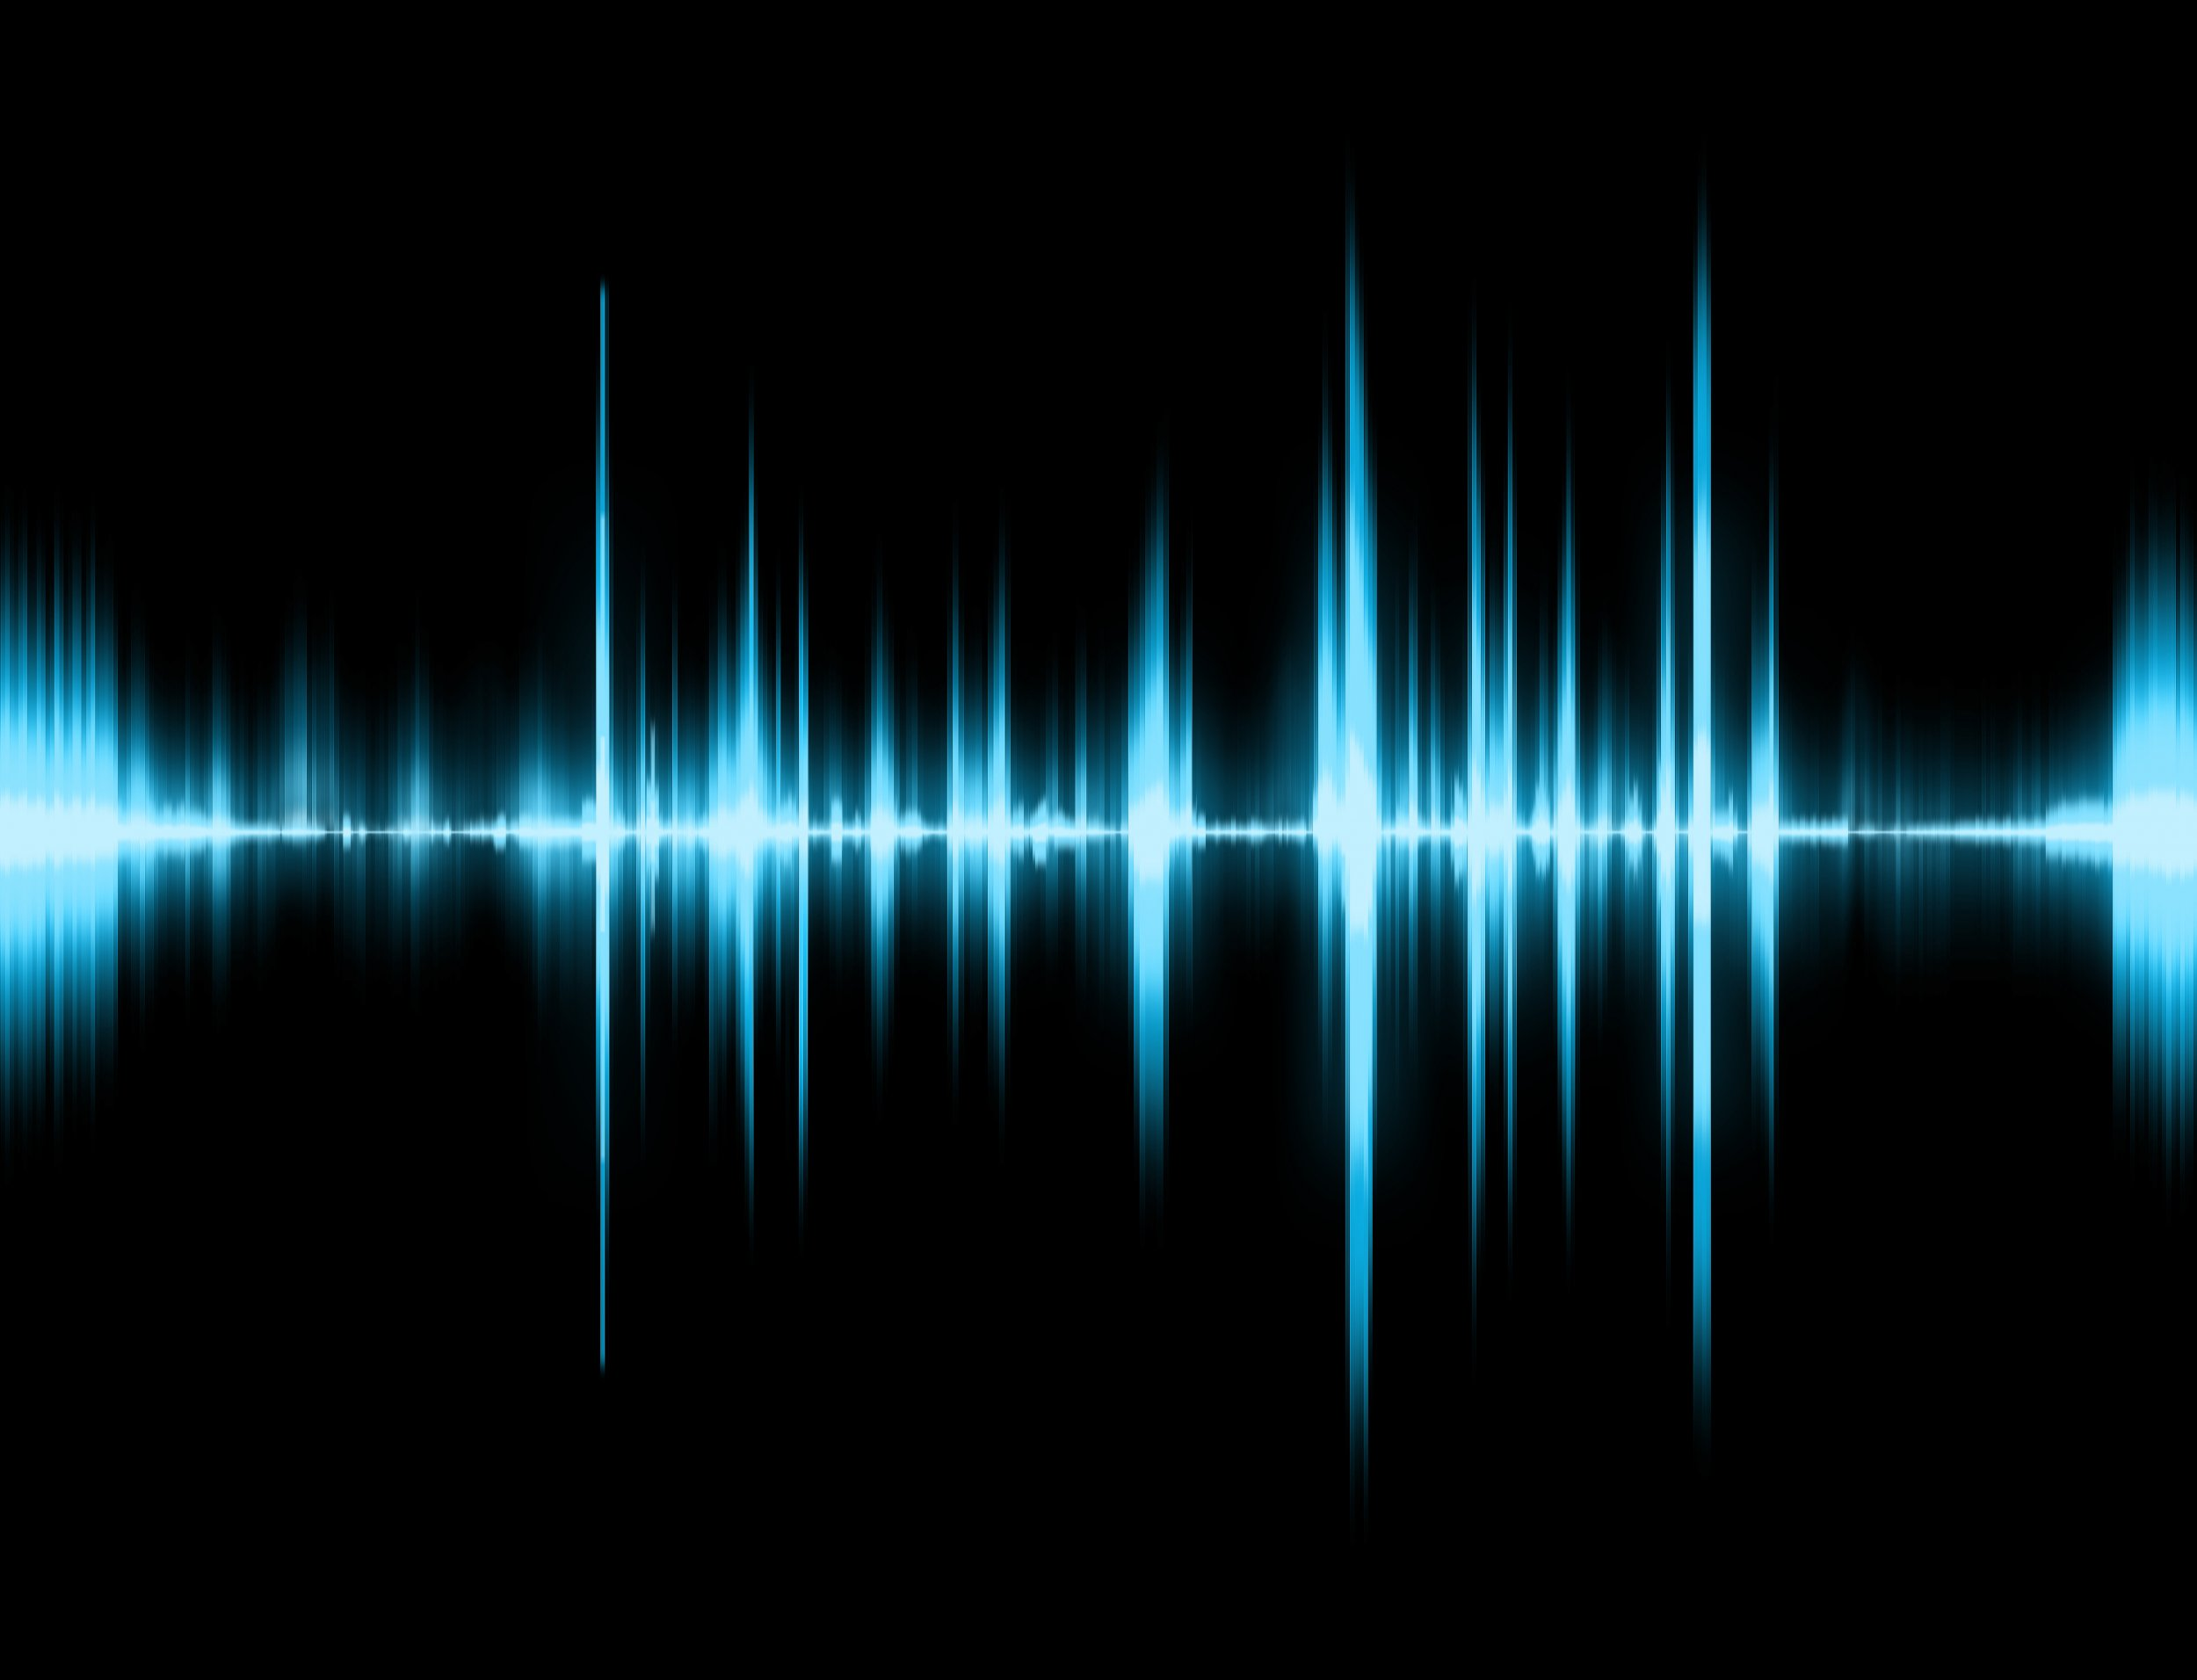 artificial intelligence sound turing test